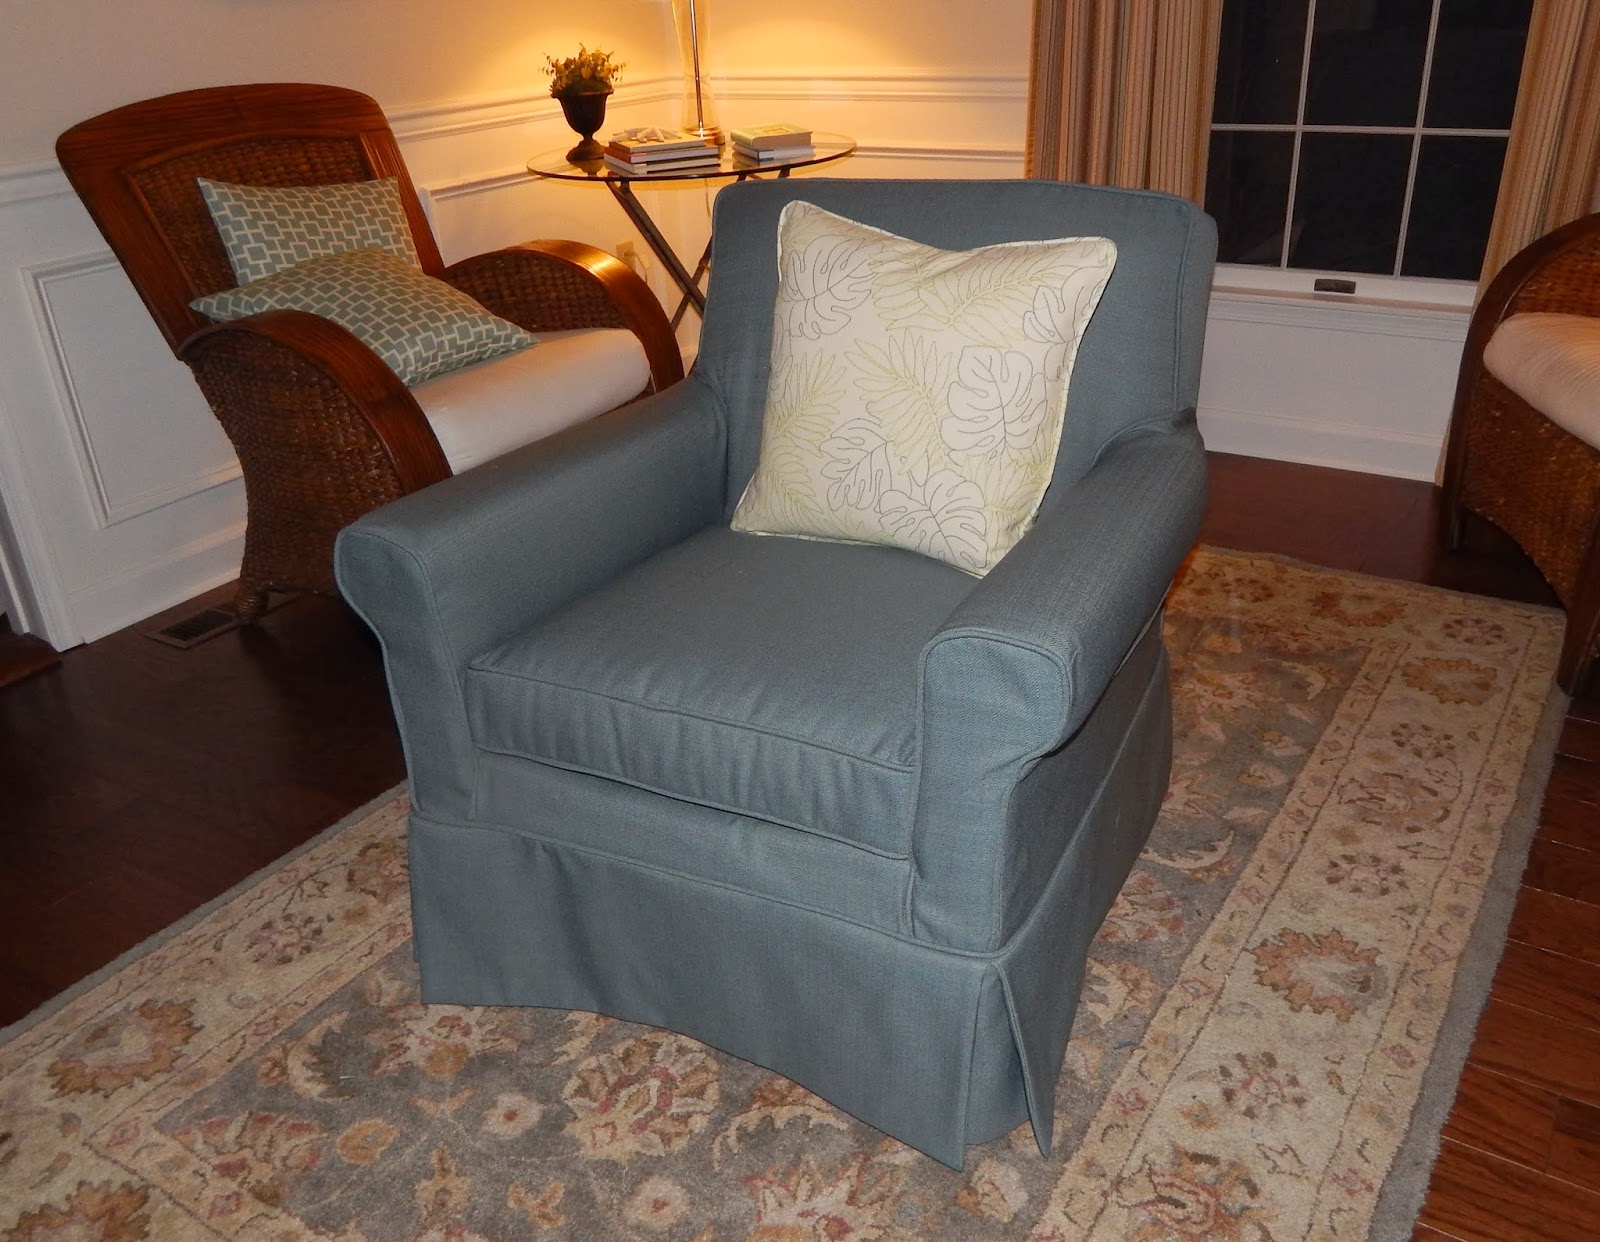 best room walmart black living cover fabulous exclusive of dining to interior theme chairs chair teak livings according